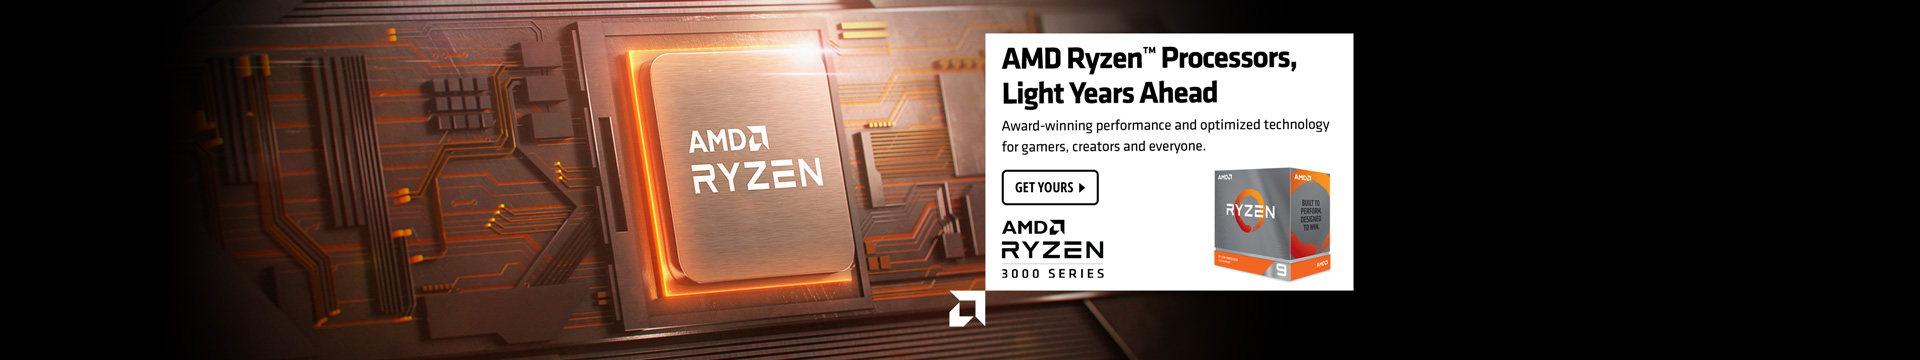 AMD Ryzen Processors, light years ahead